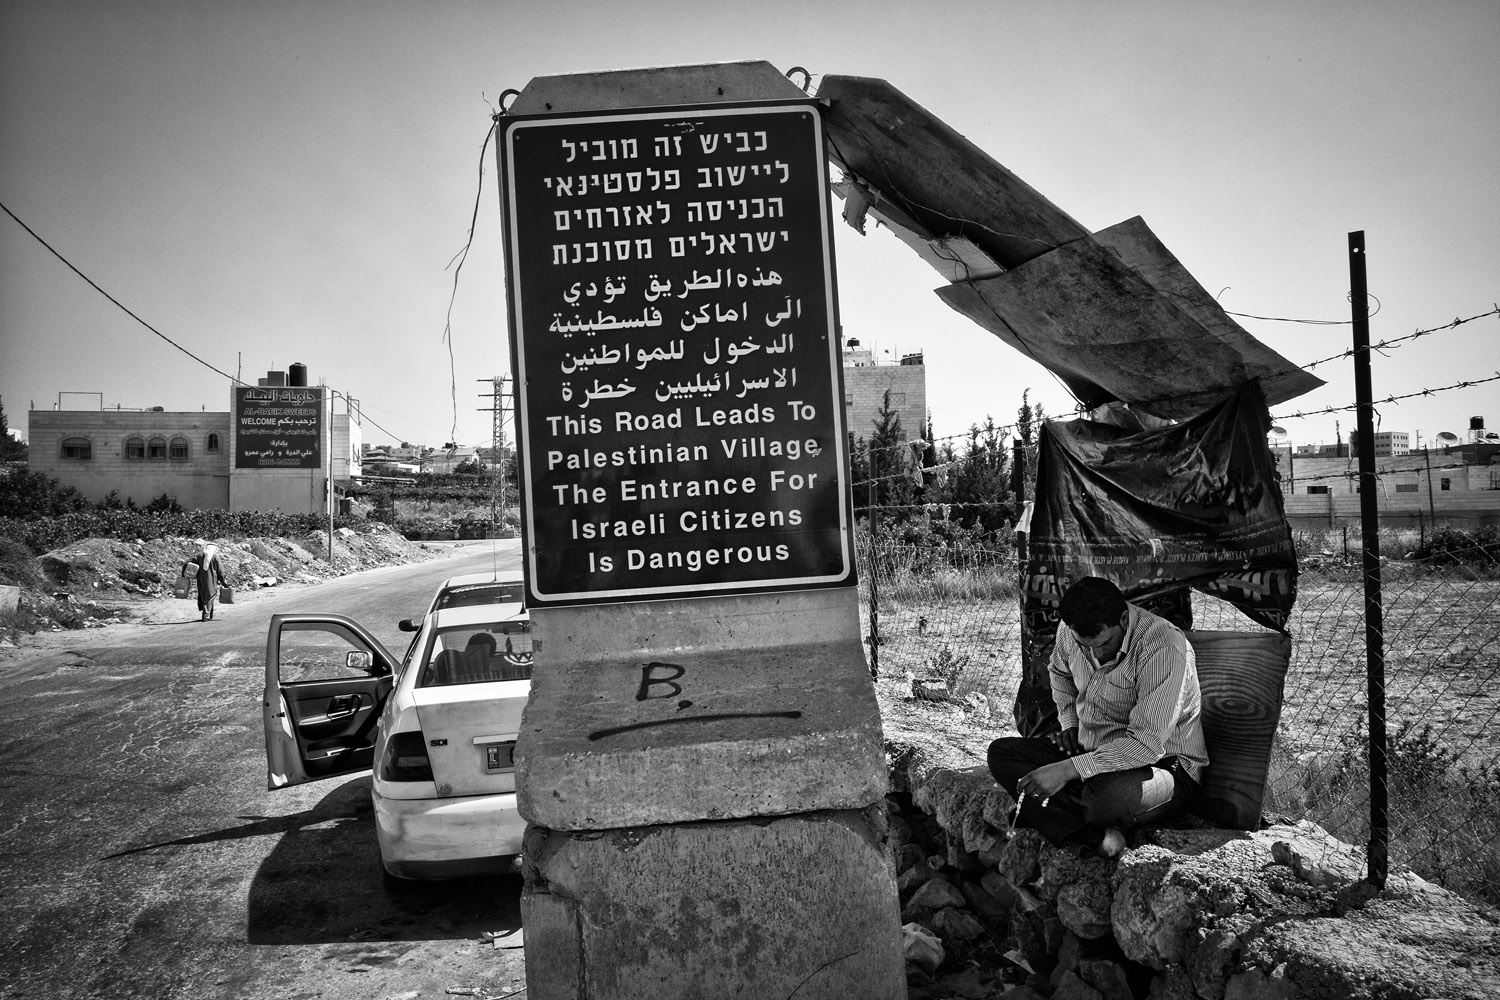 A road sign at the entrance of the village in Sayr, West Bank, June 22, 2013.